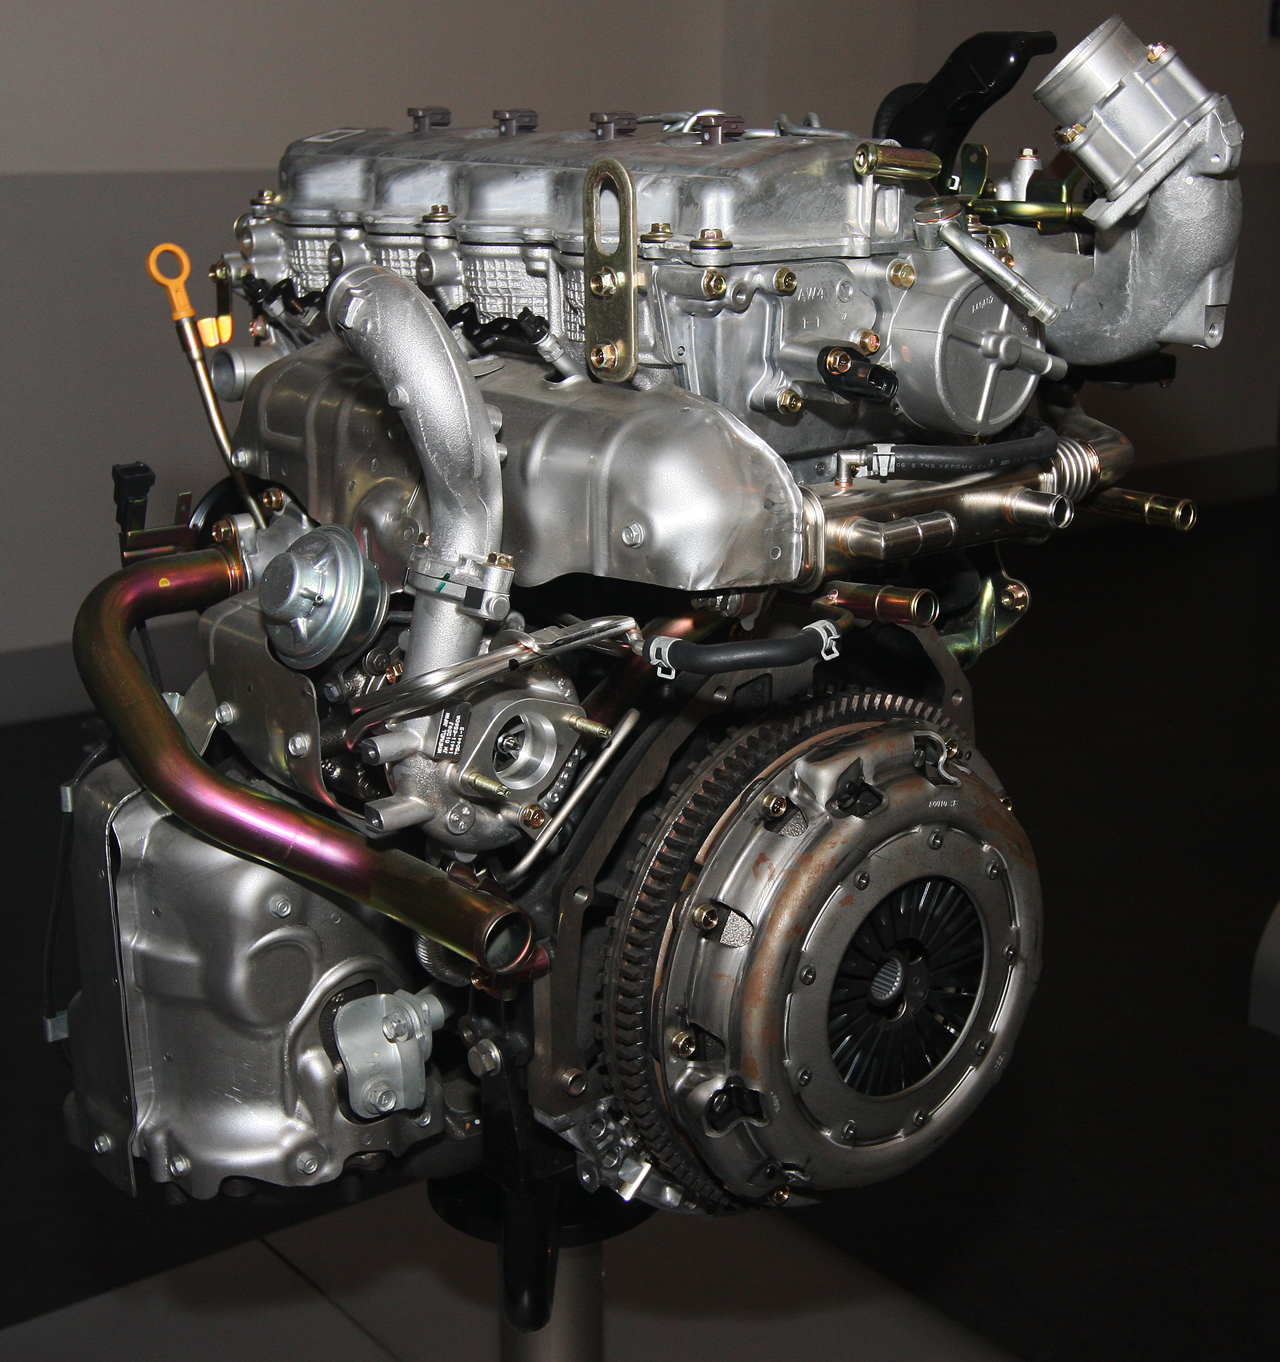 2003_Nissan_YD22DDTi_engine_right-rear.jpg